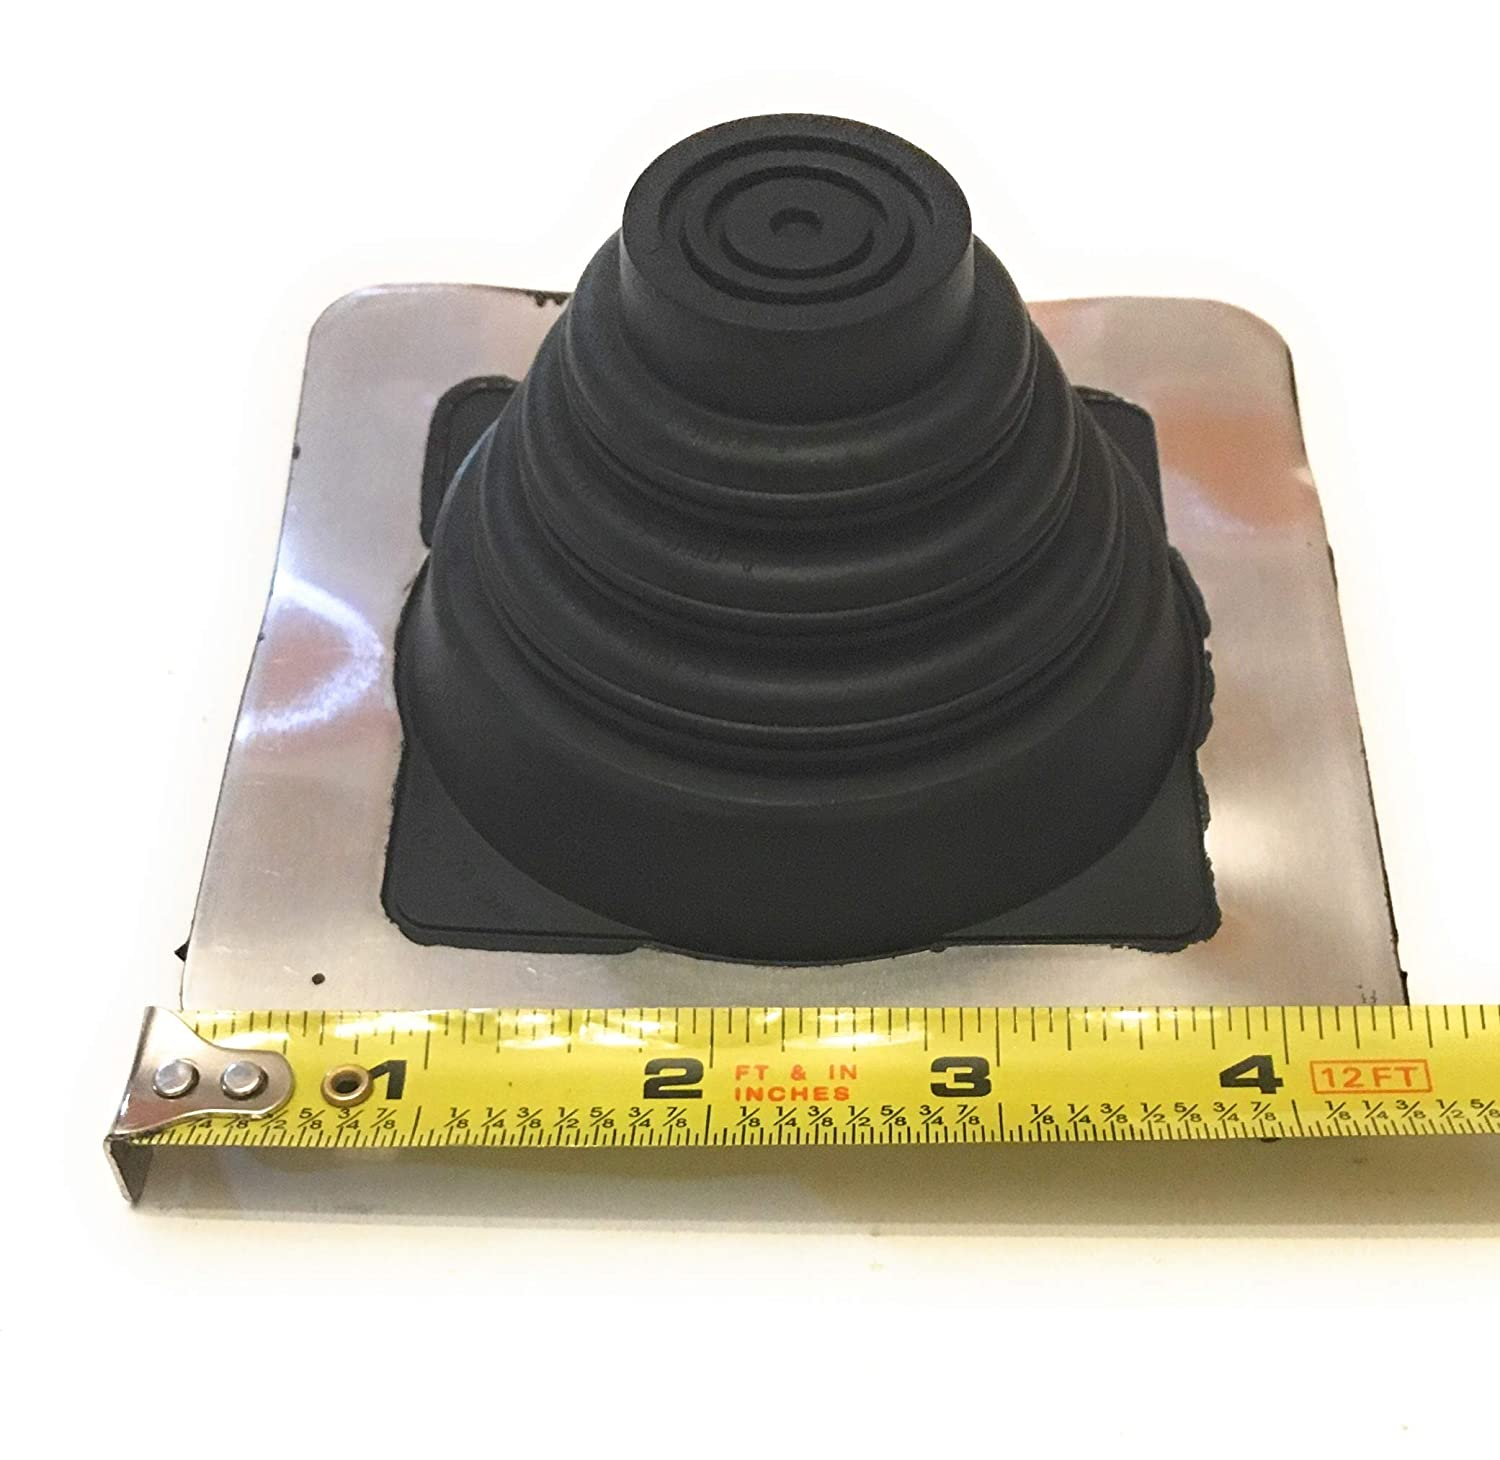 On Site Adjustable Roof Pipe Jack Boot with Round Base High Temp, 6 EAGLE 1 EPDM Flexible Roofing Pipe Flashing Boots